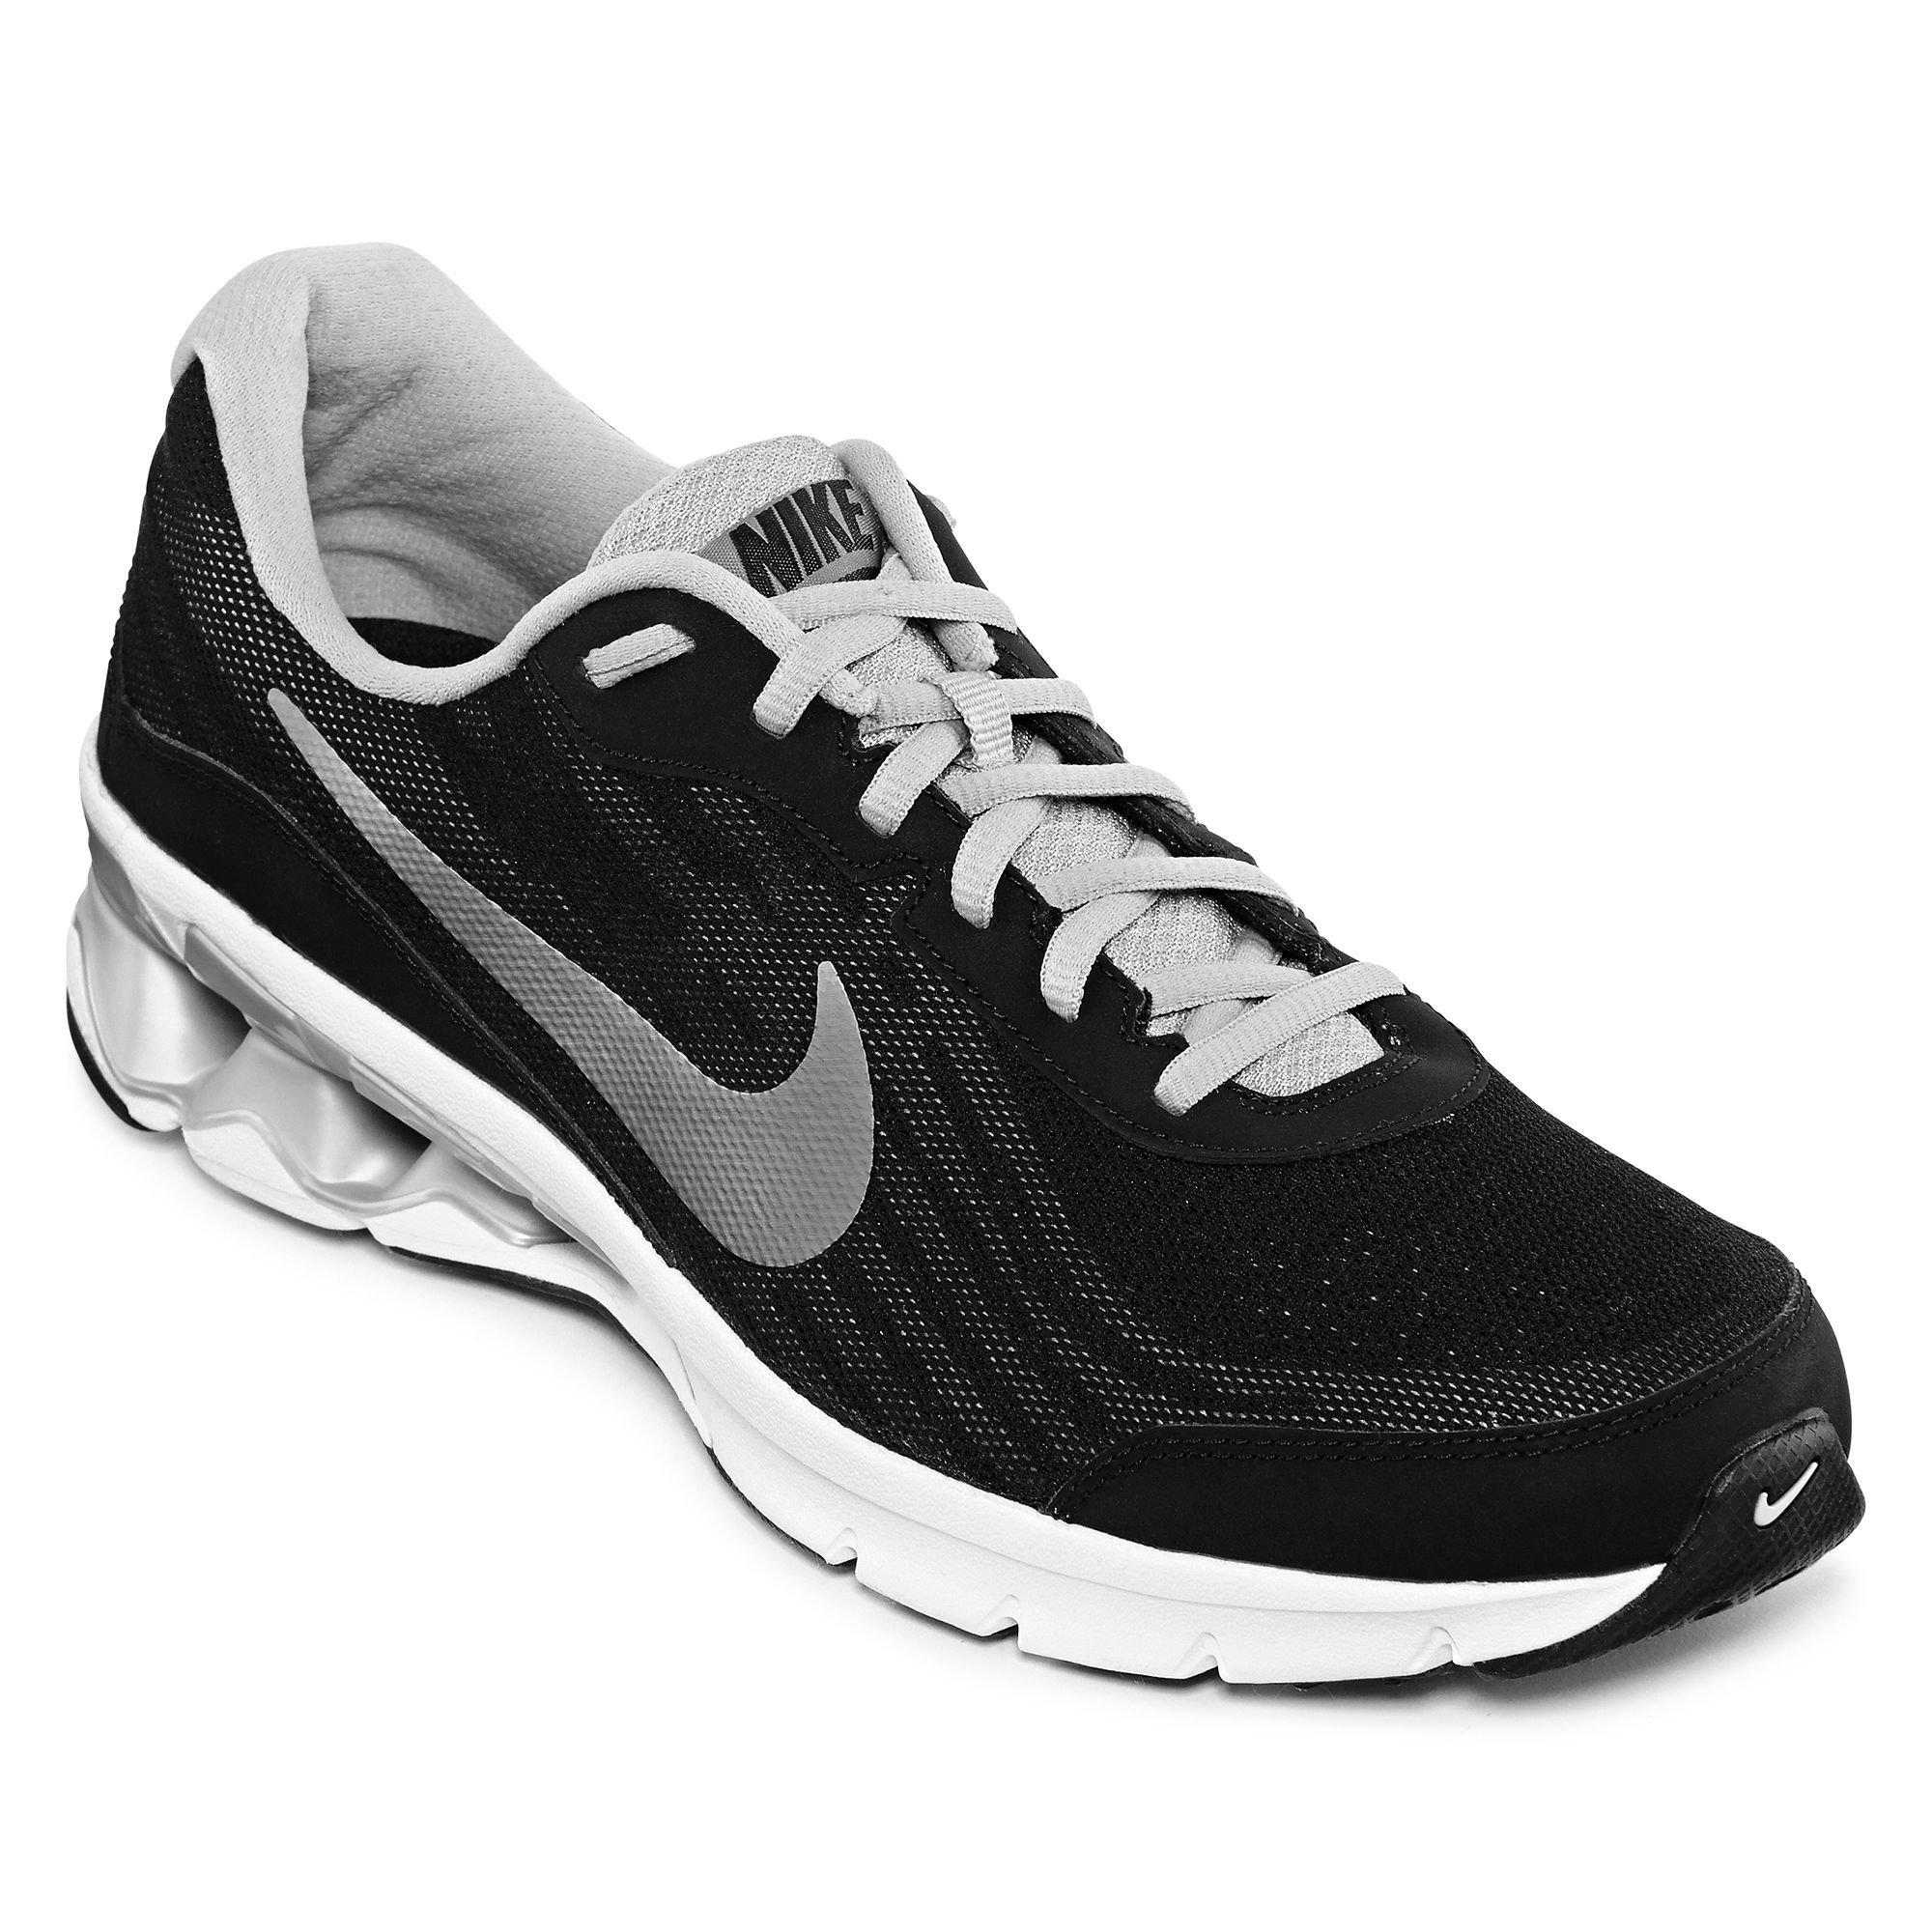 0cb35fe3be27 Details about Nike Men s Reax Run 9 Black Metallic Silver Dark Grey White  Running Shoe